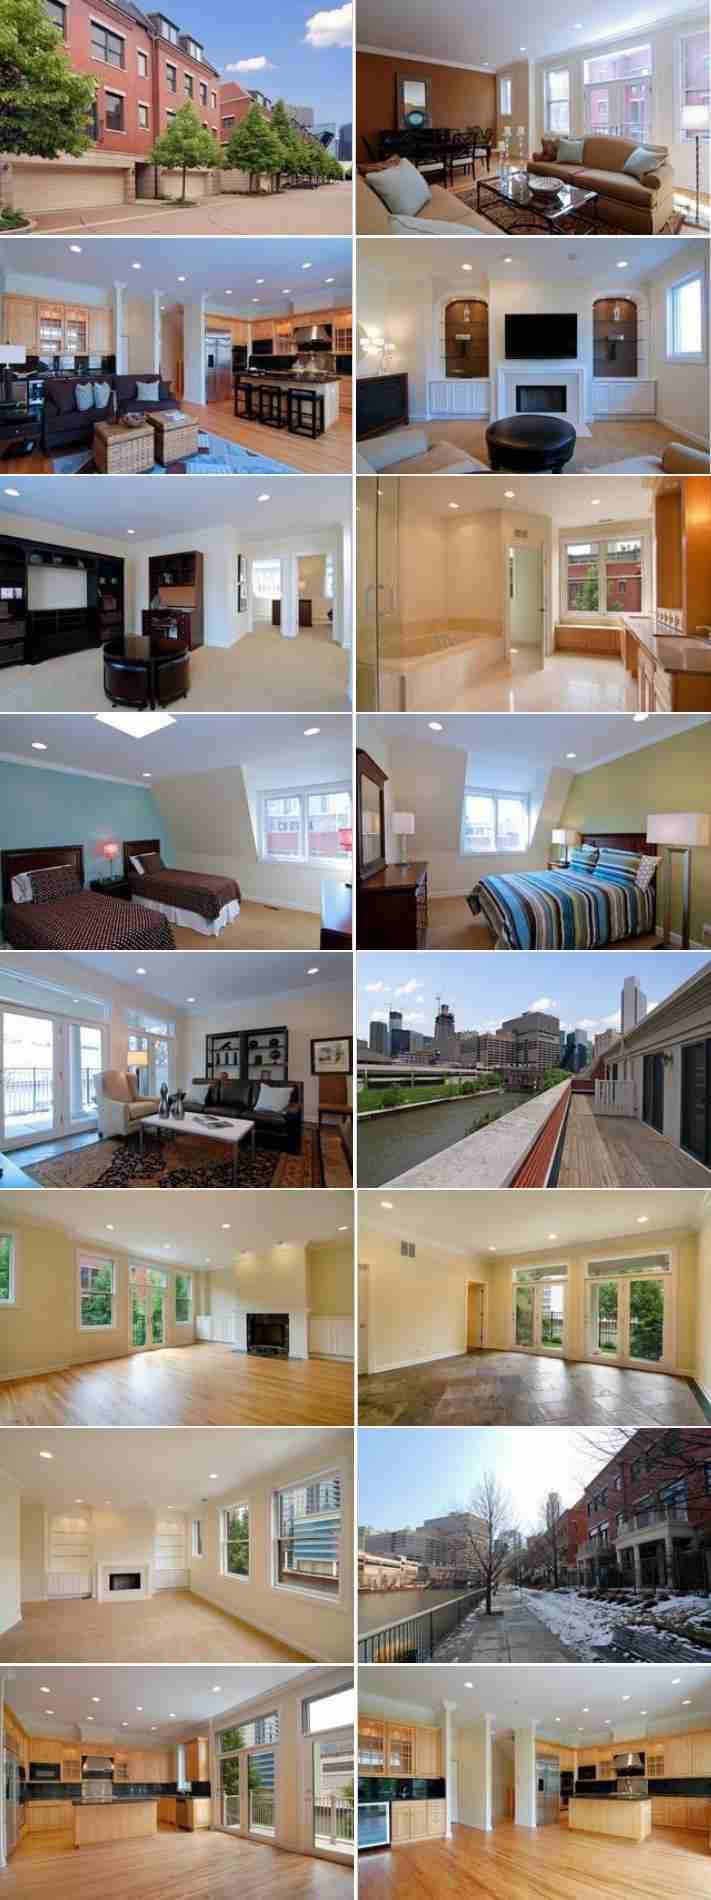 Dwyane Wade's house Chicago, IL pictures